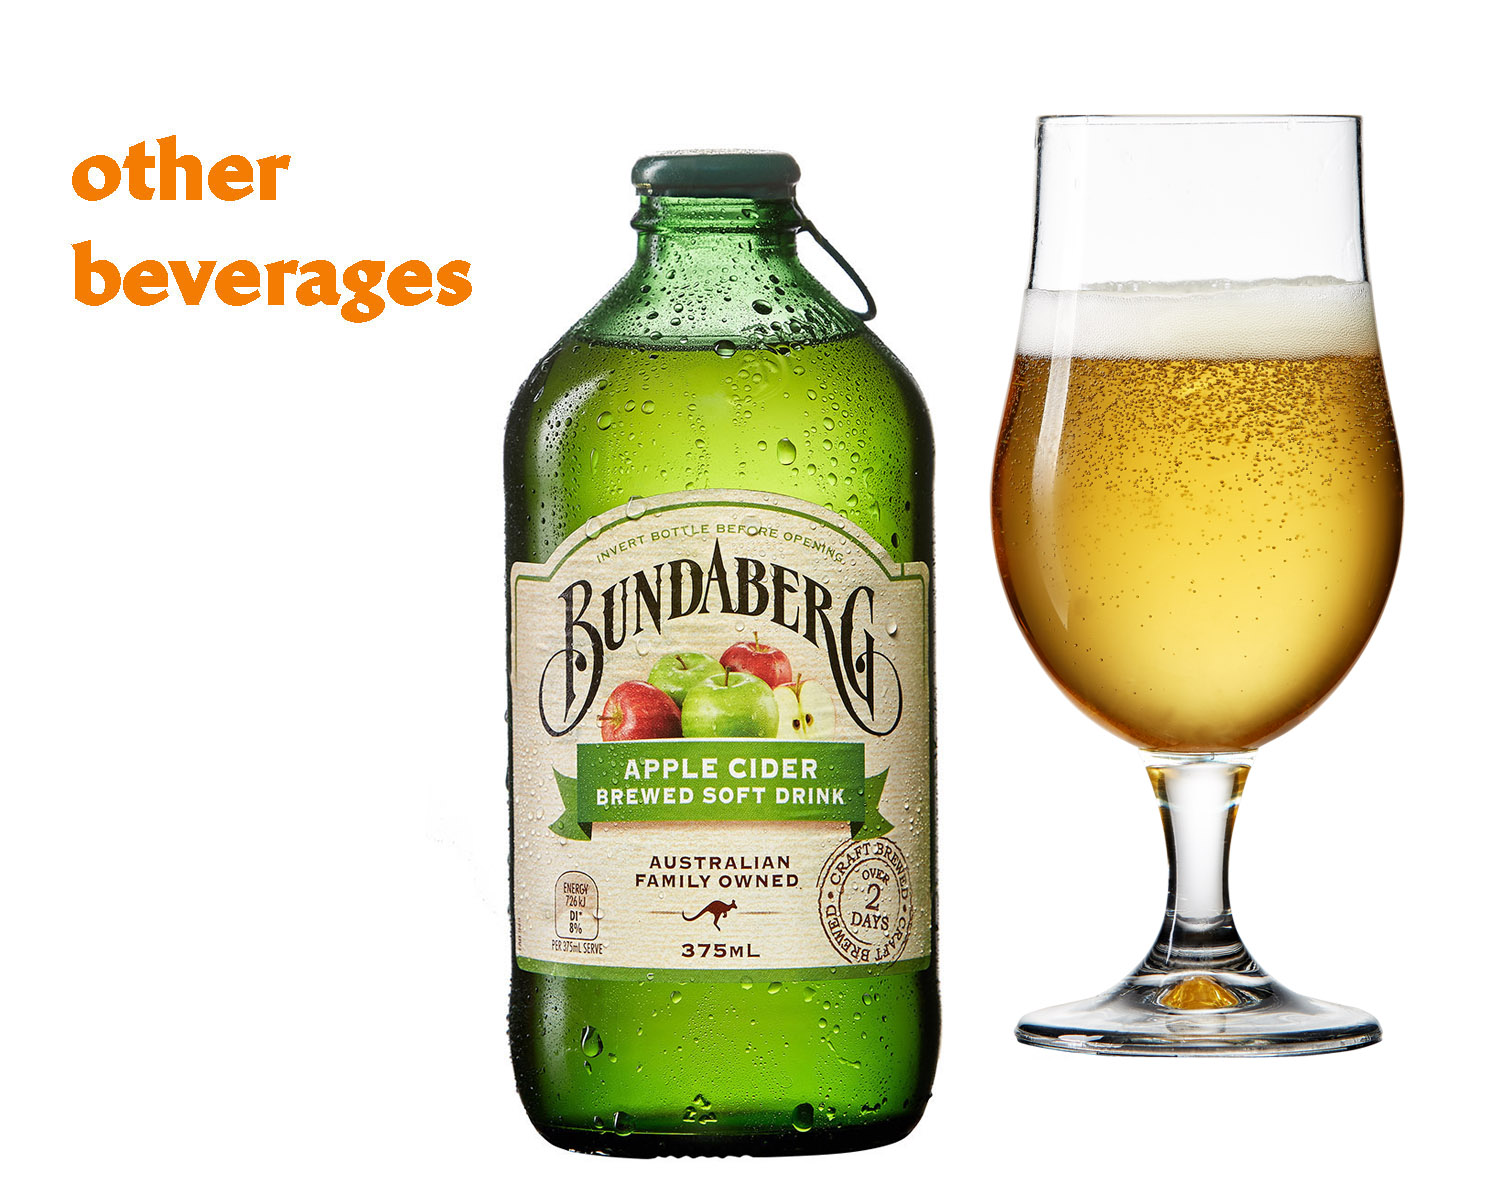 Bundaberg_Cider_FS2_glass_1500w.jpg